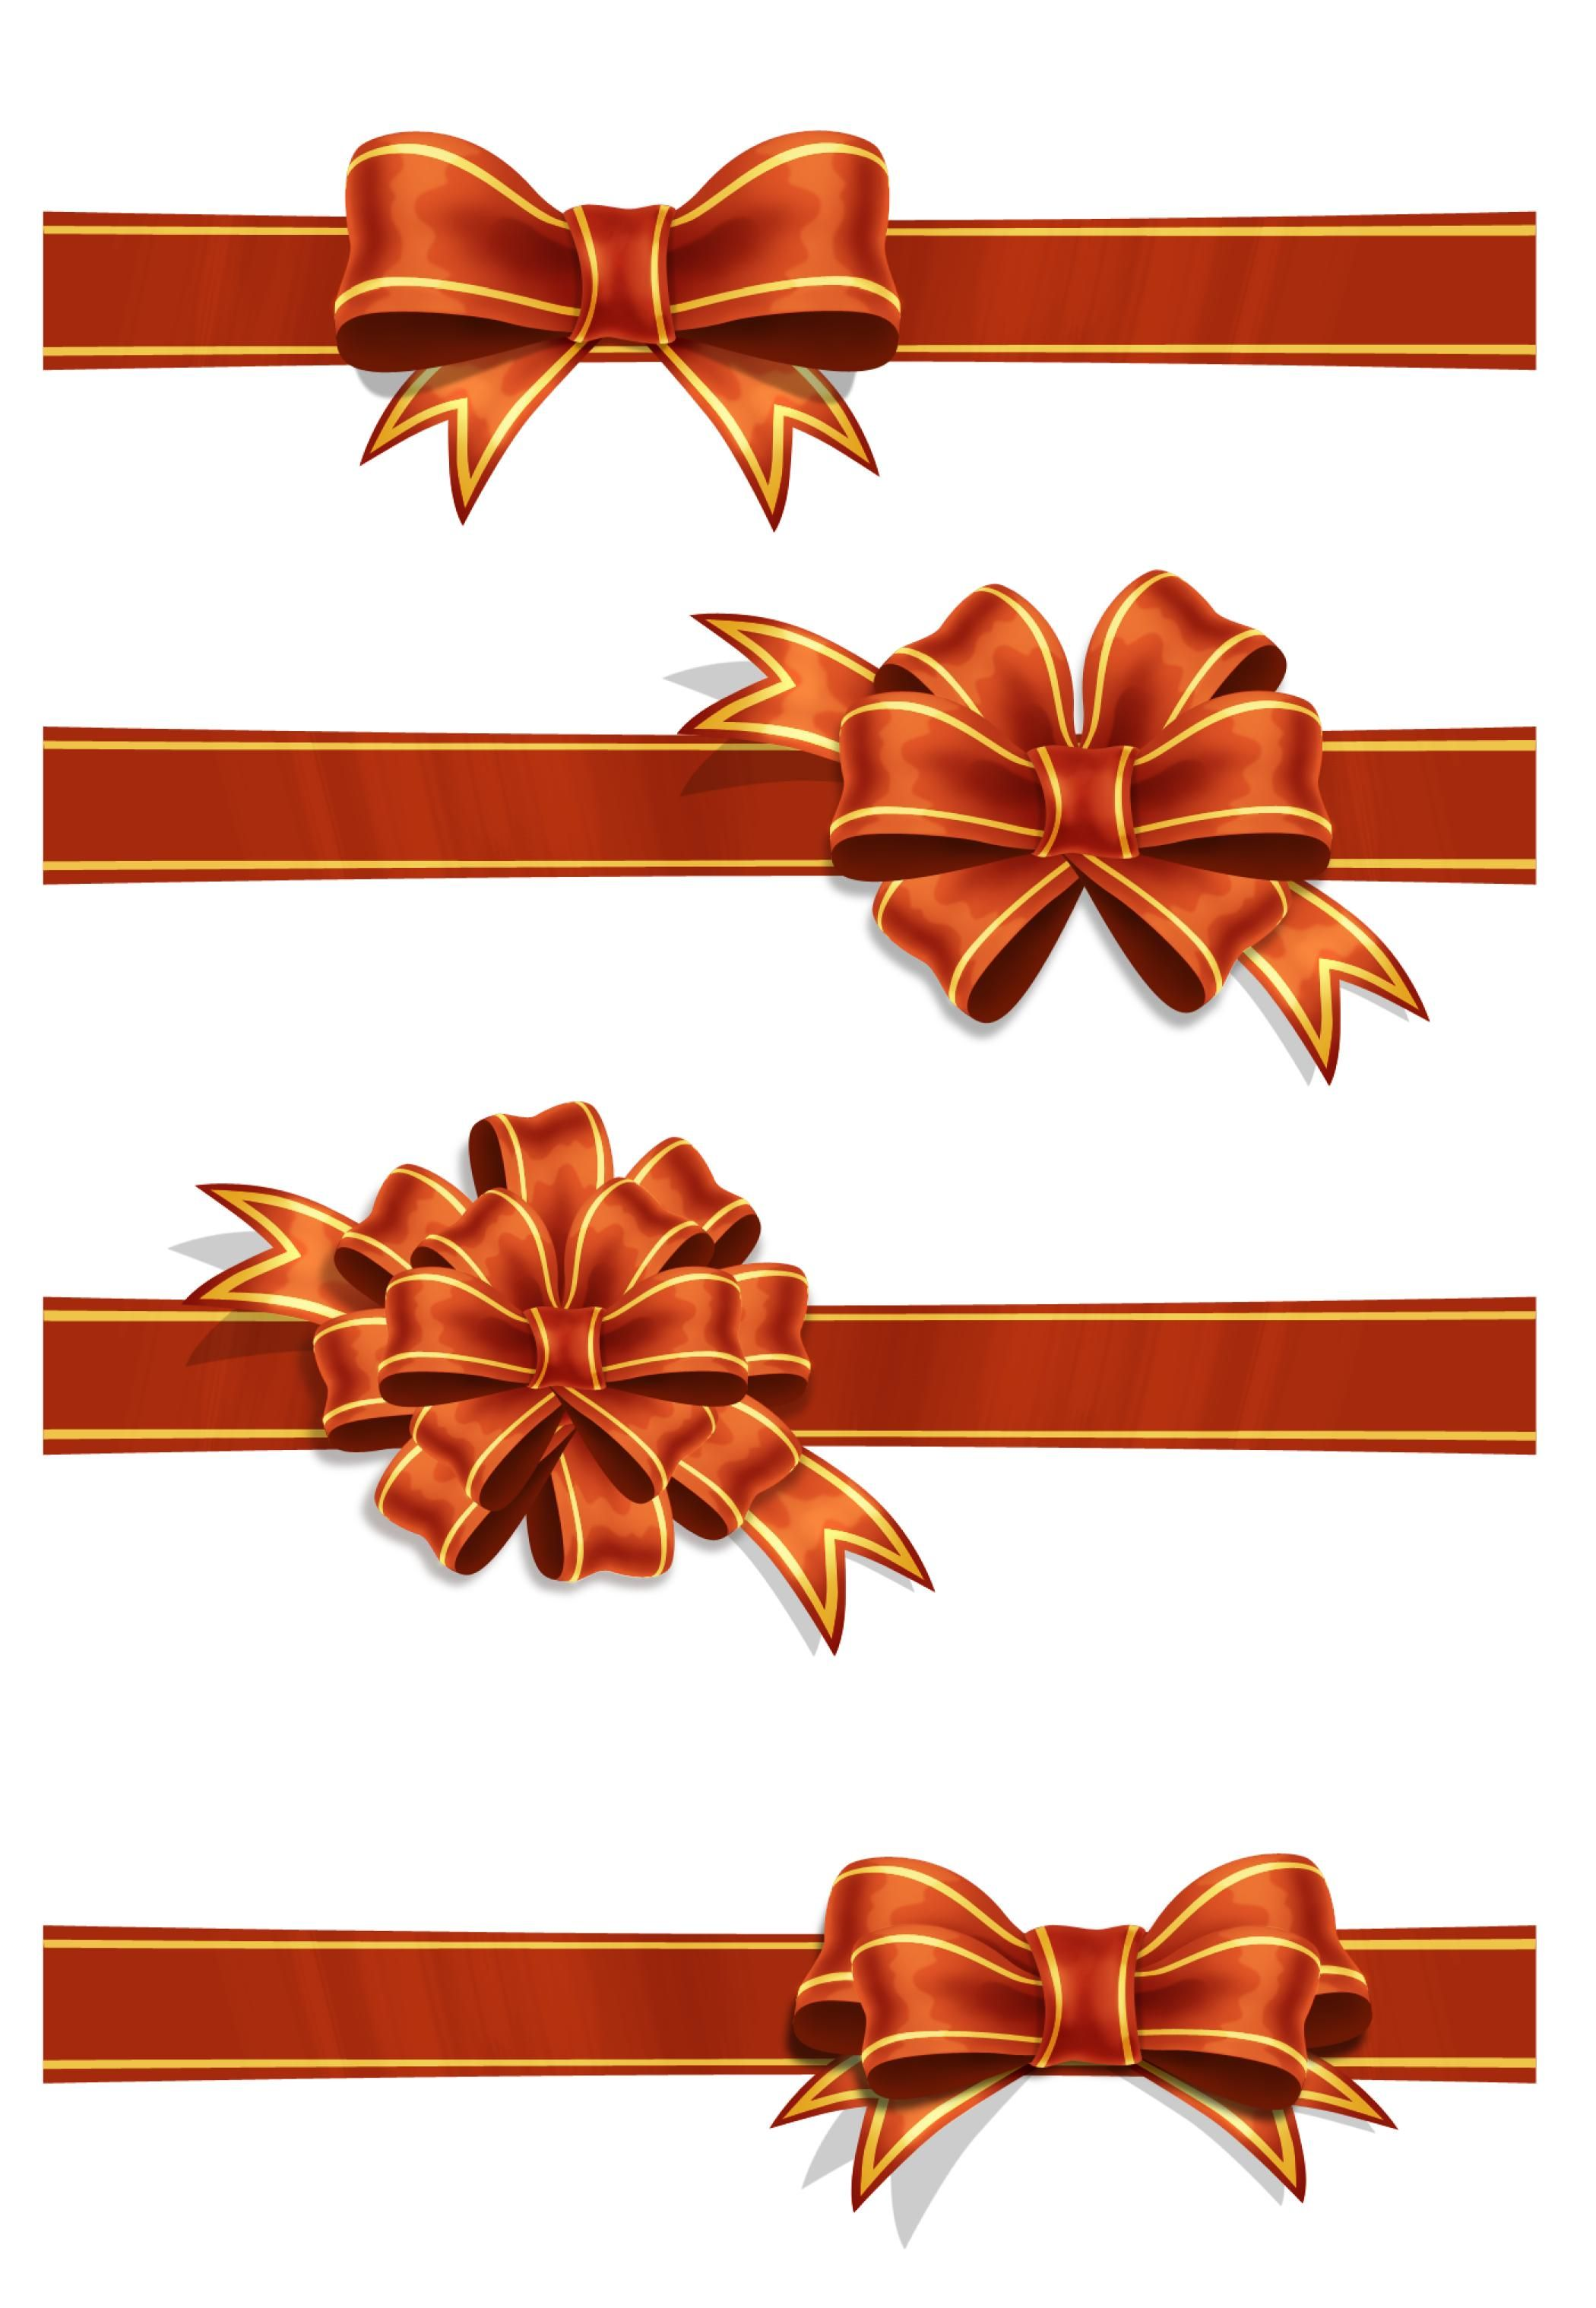 Line Design Art Psd : Red ribbons psd file art background birthday bow